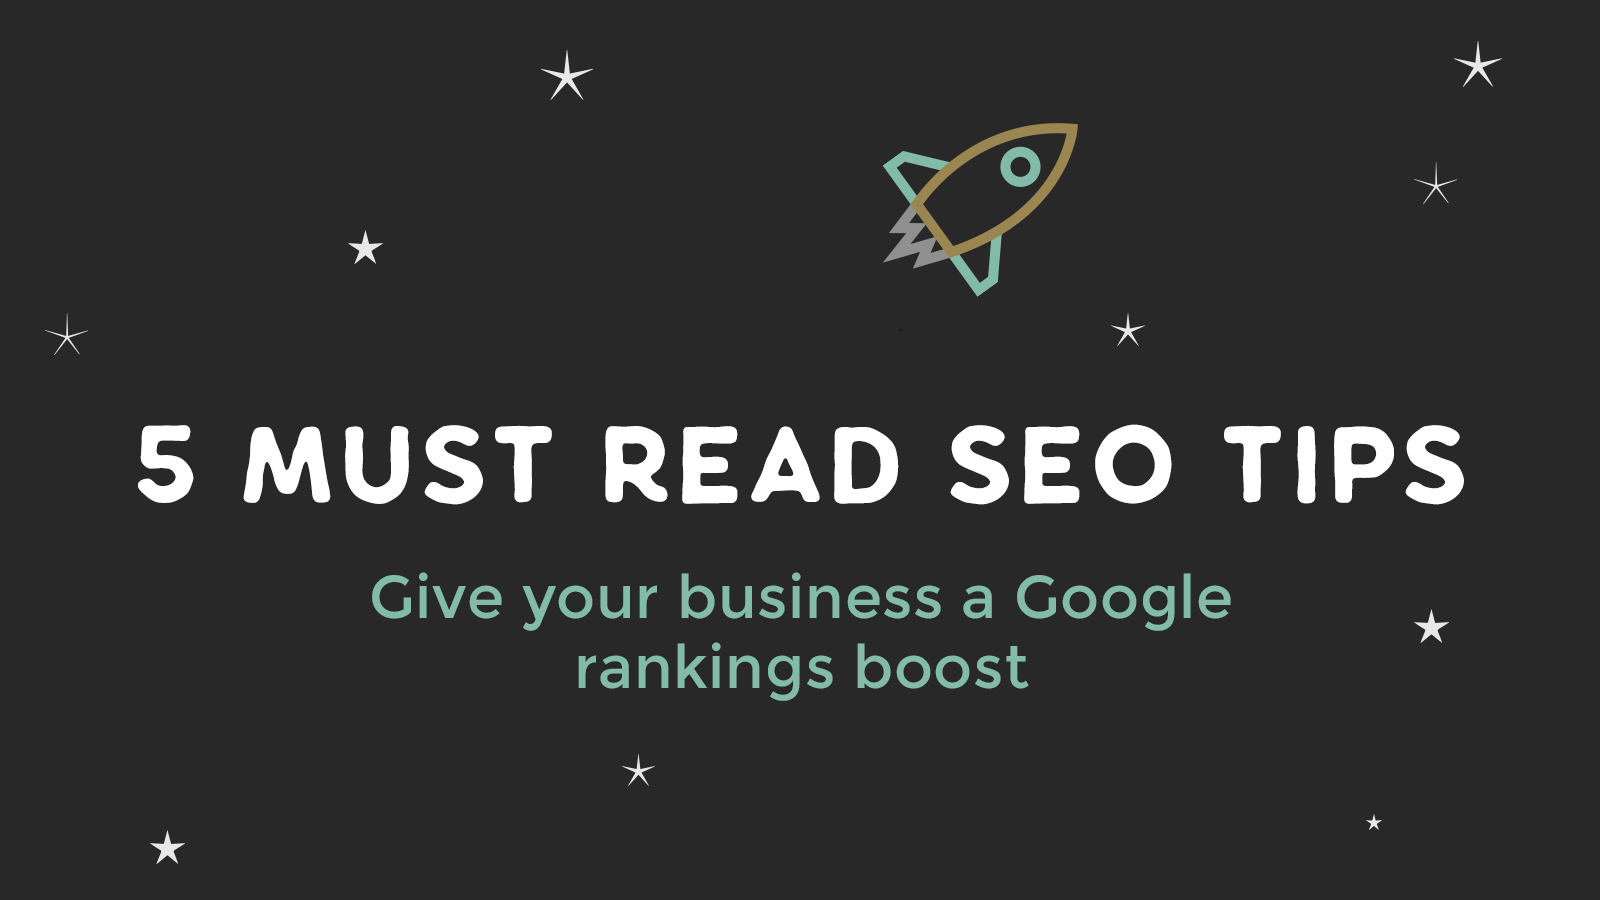 5 SEO tips to give your business a Google rankings boost